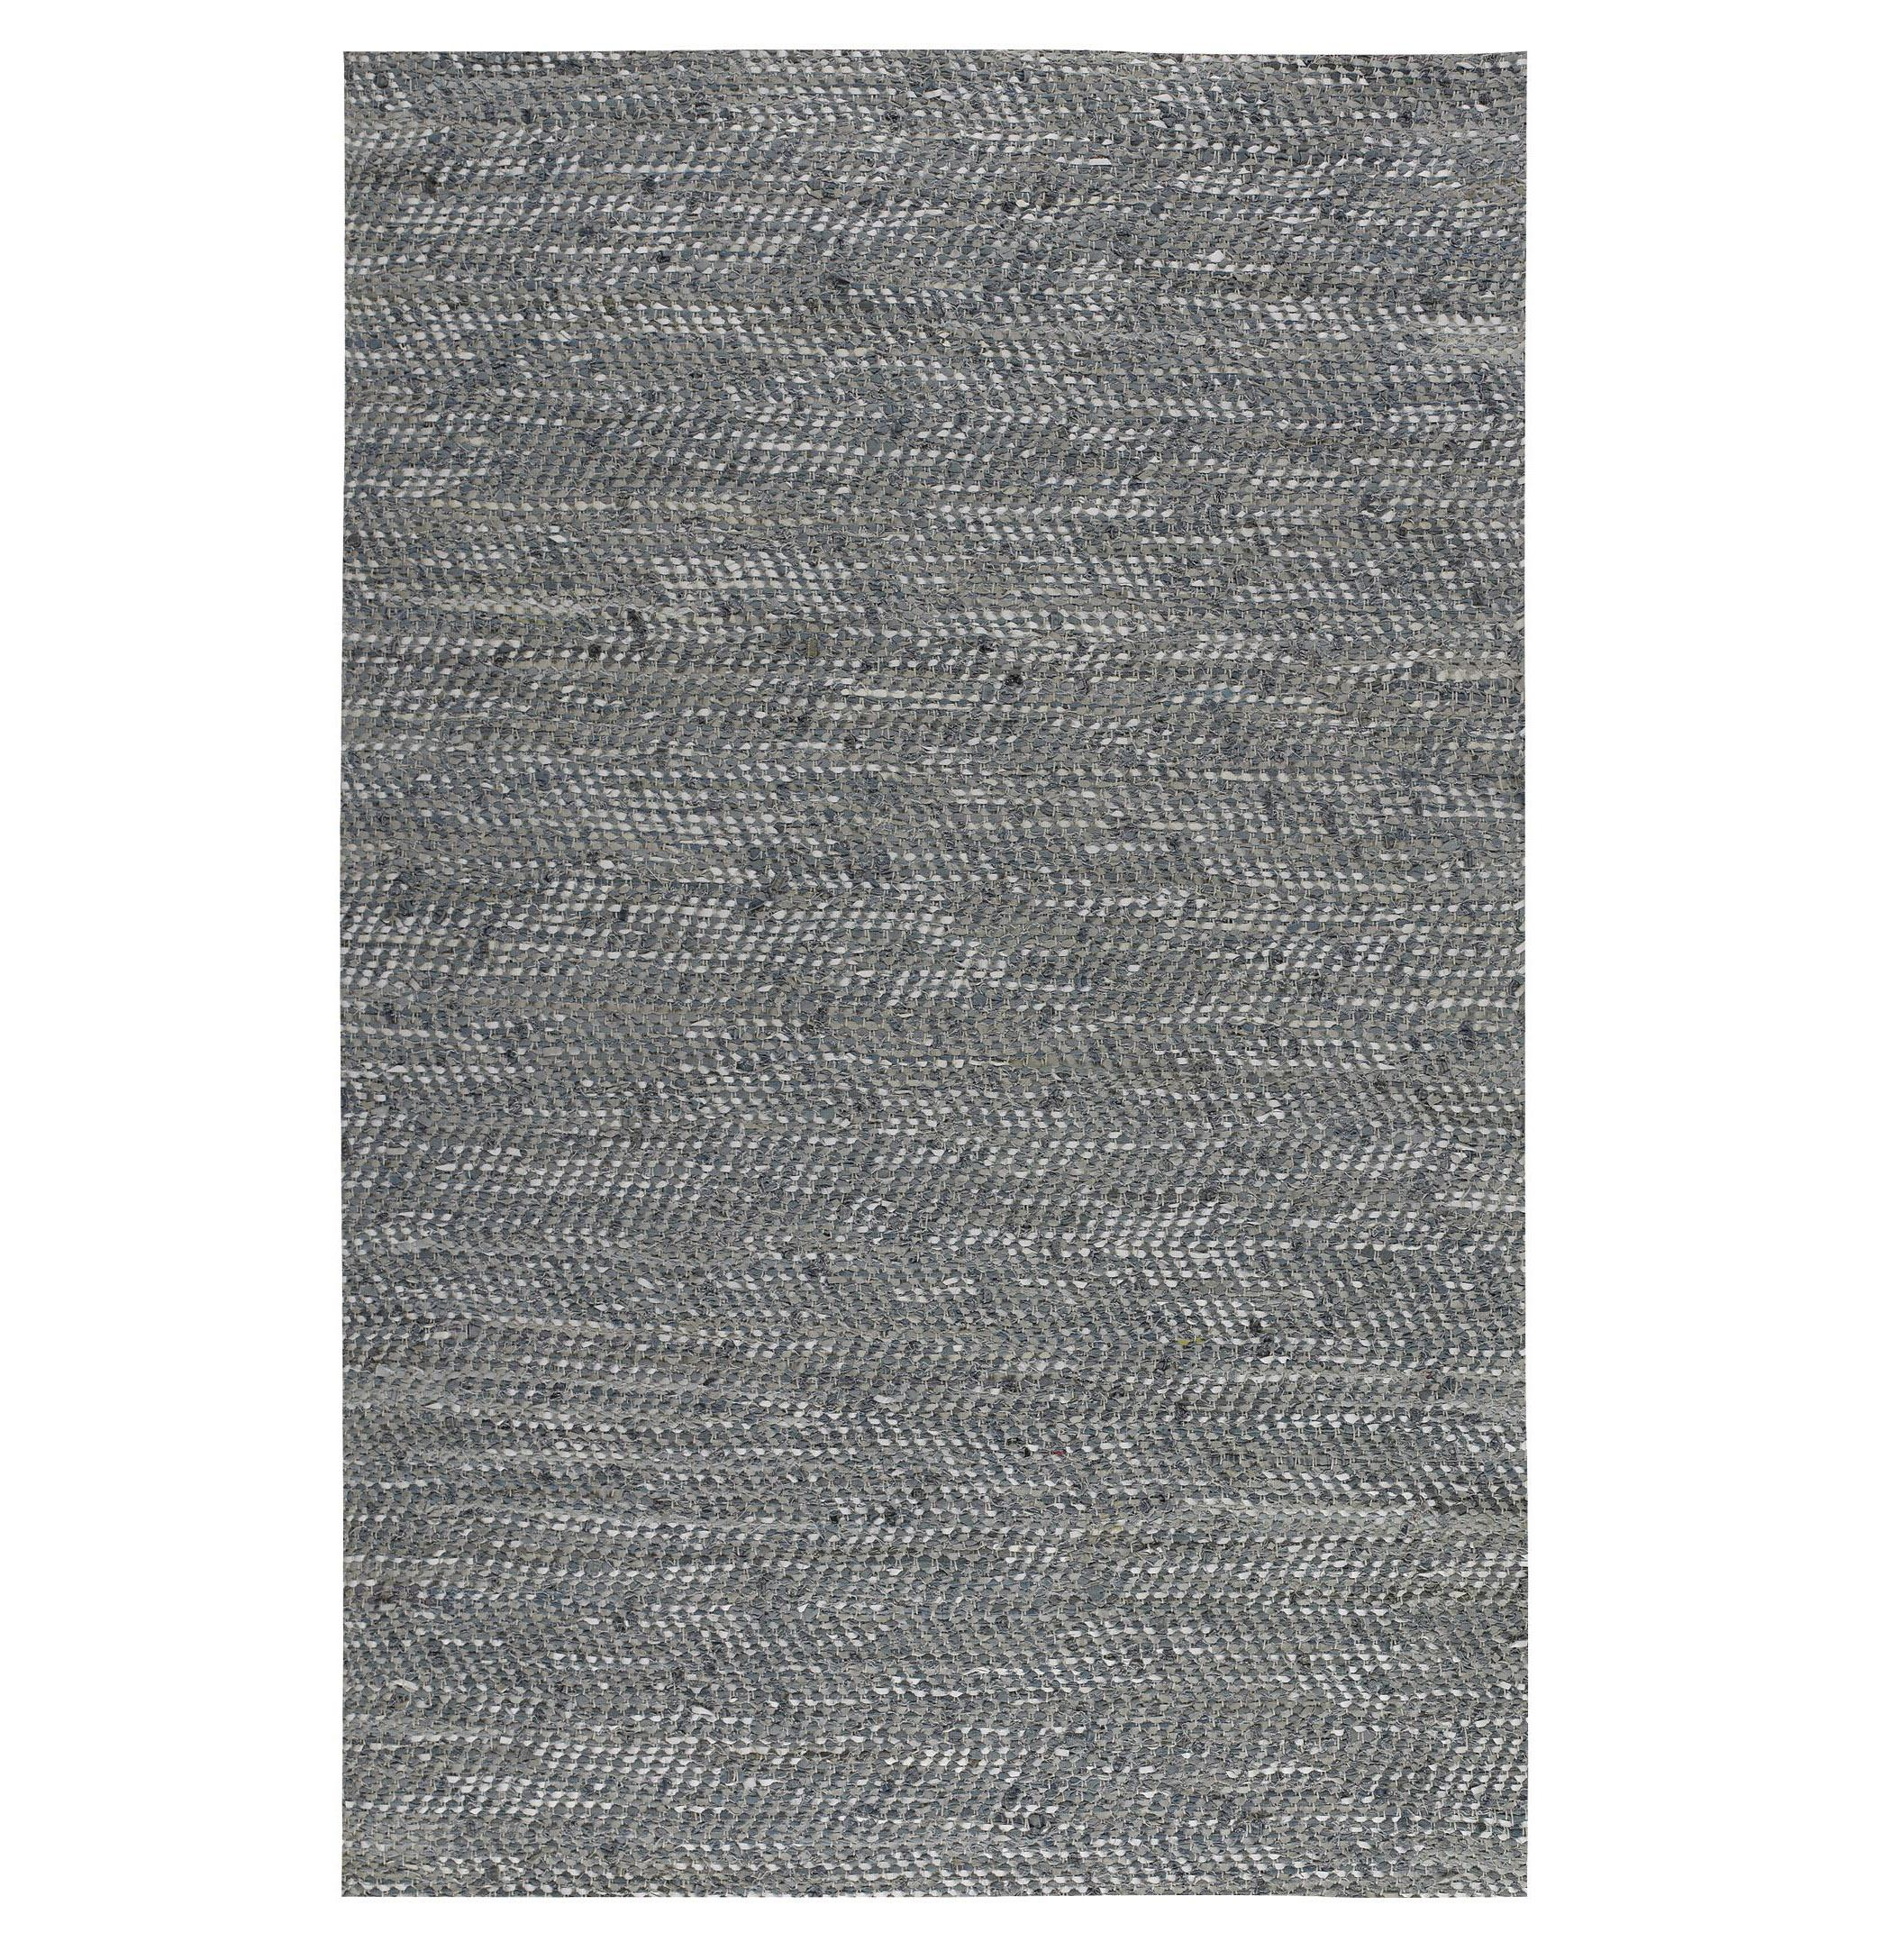 Uttermost Rugs Branson 5 X 8 Woven Rug - Gray Blue - Item Number: 71038-5